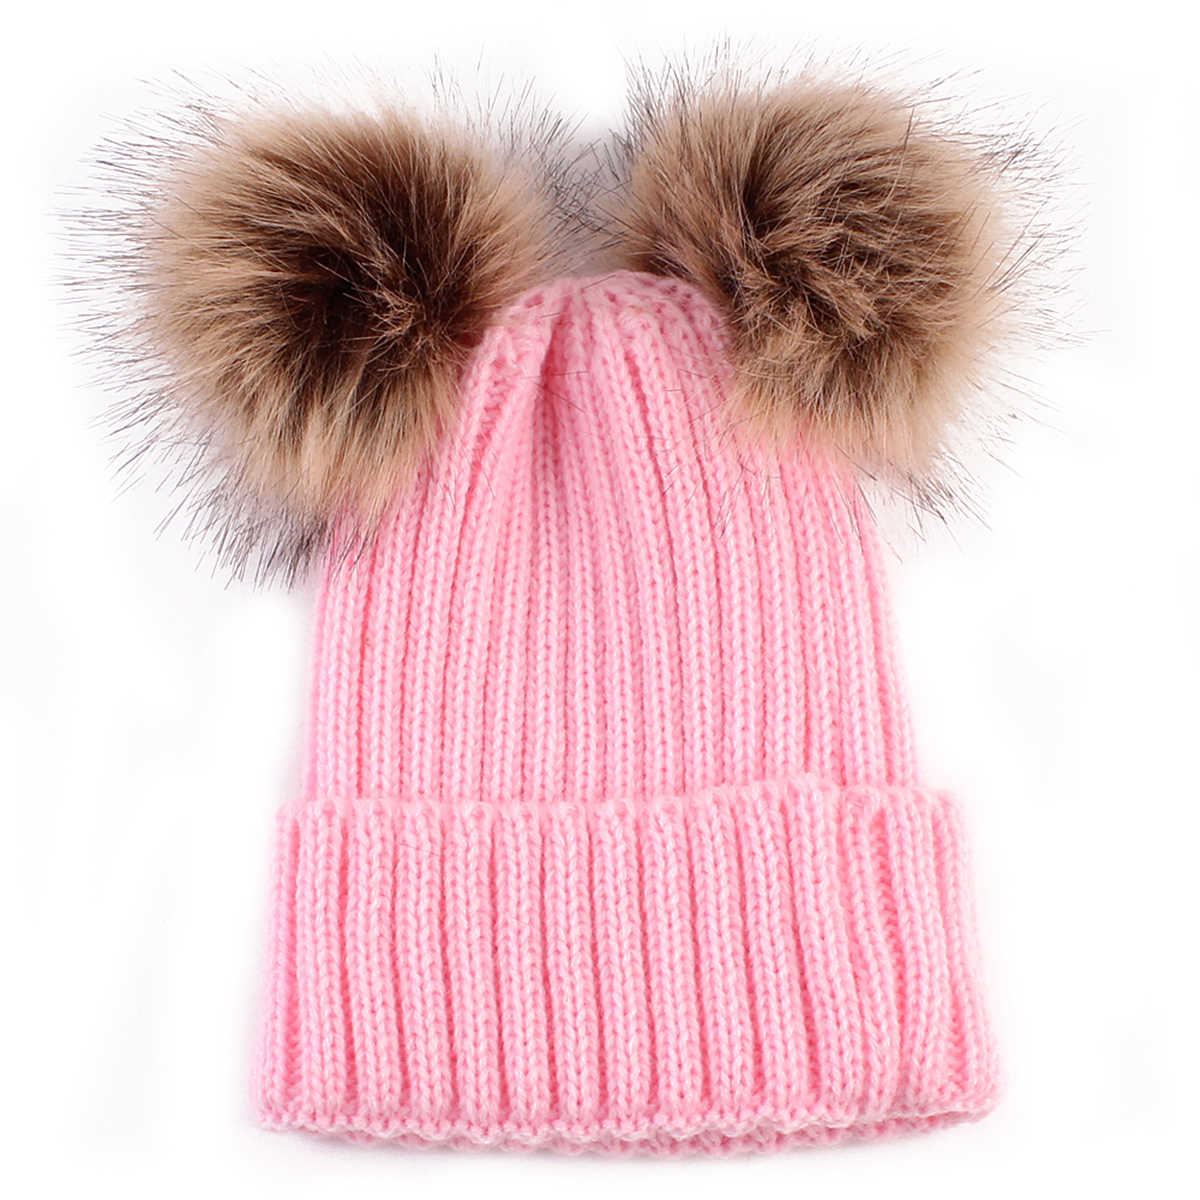 ... Baby Boy girl Winter Warm Knit Beanie Hat Winter infant Hat Double  Pompom Hats Fur Ball ... fbb658e8e176c